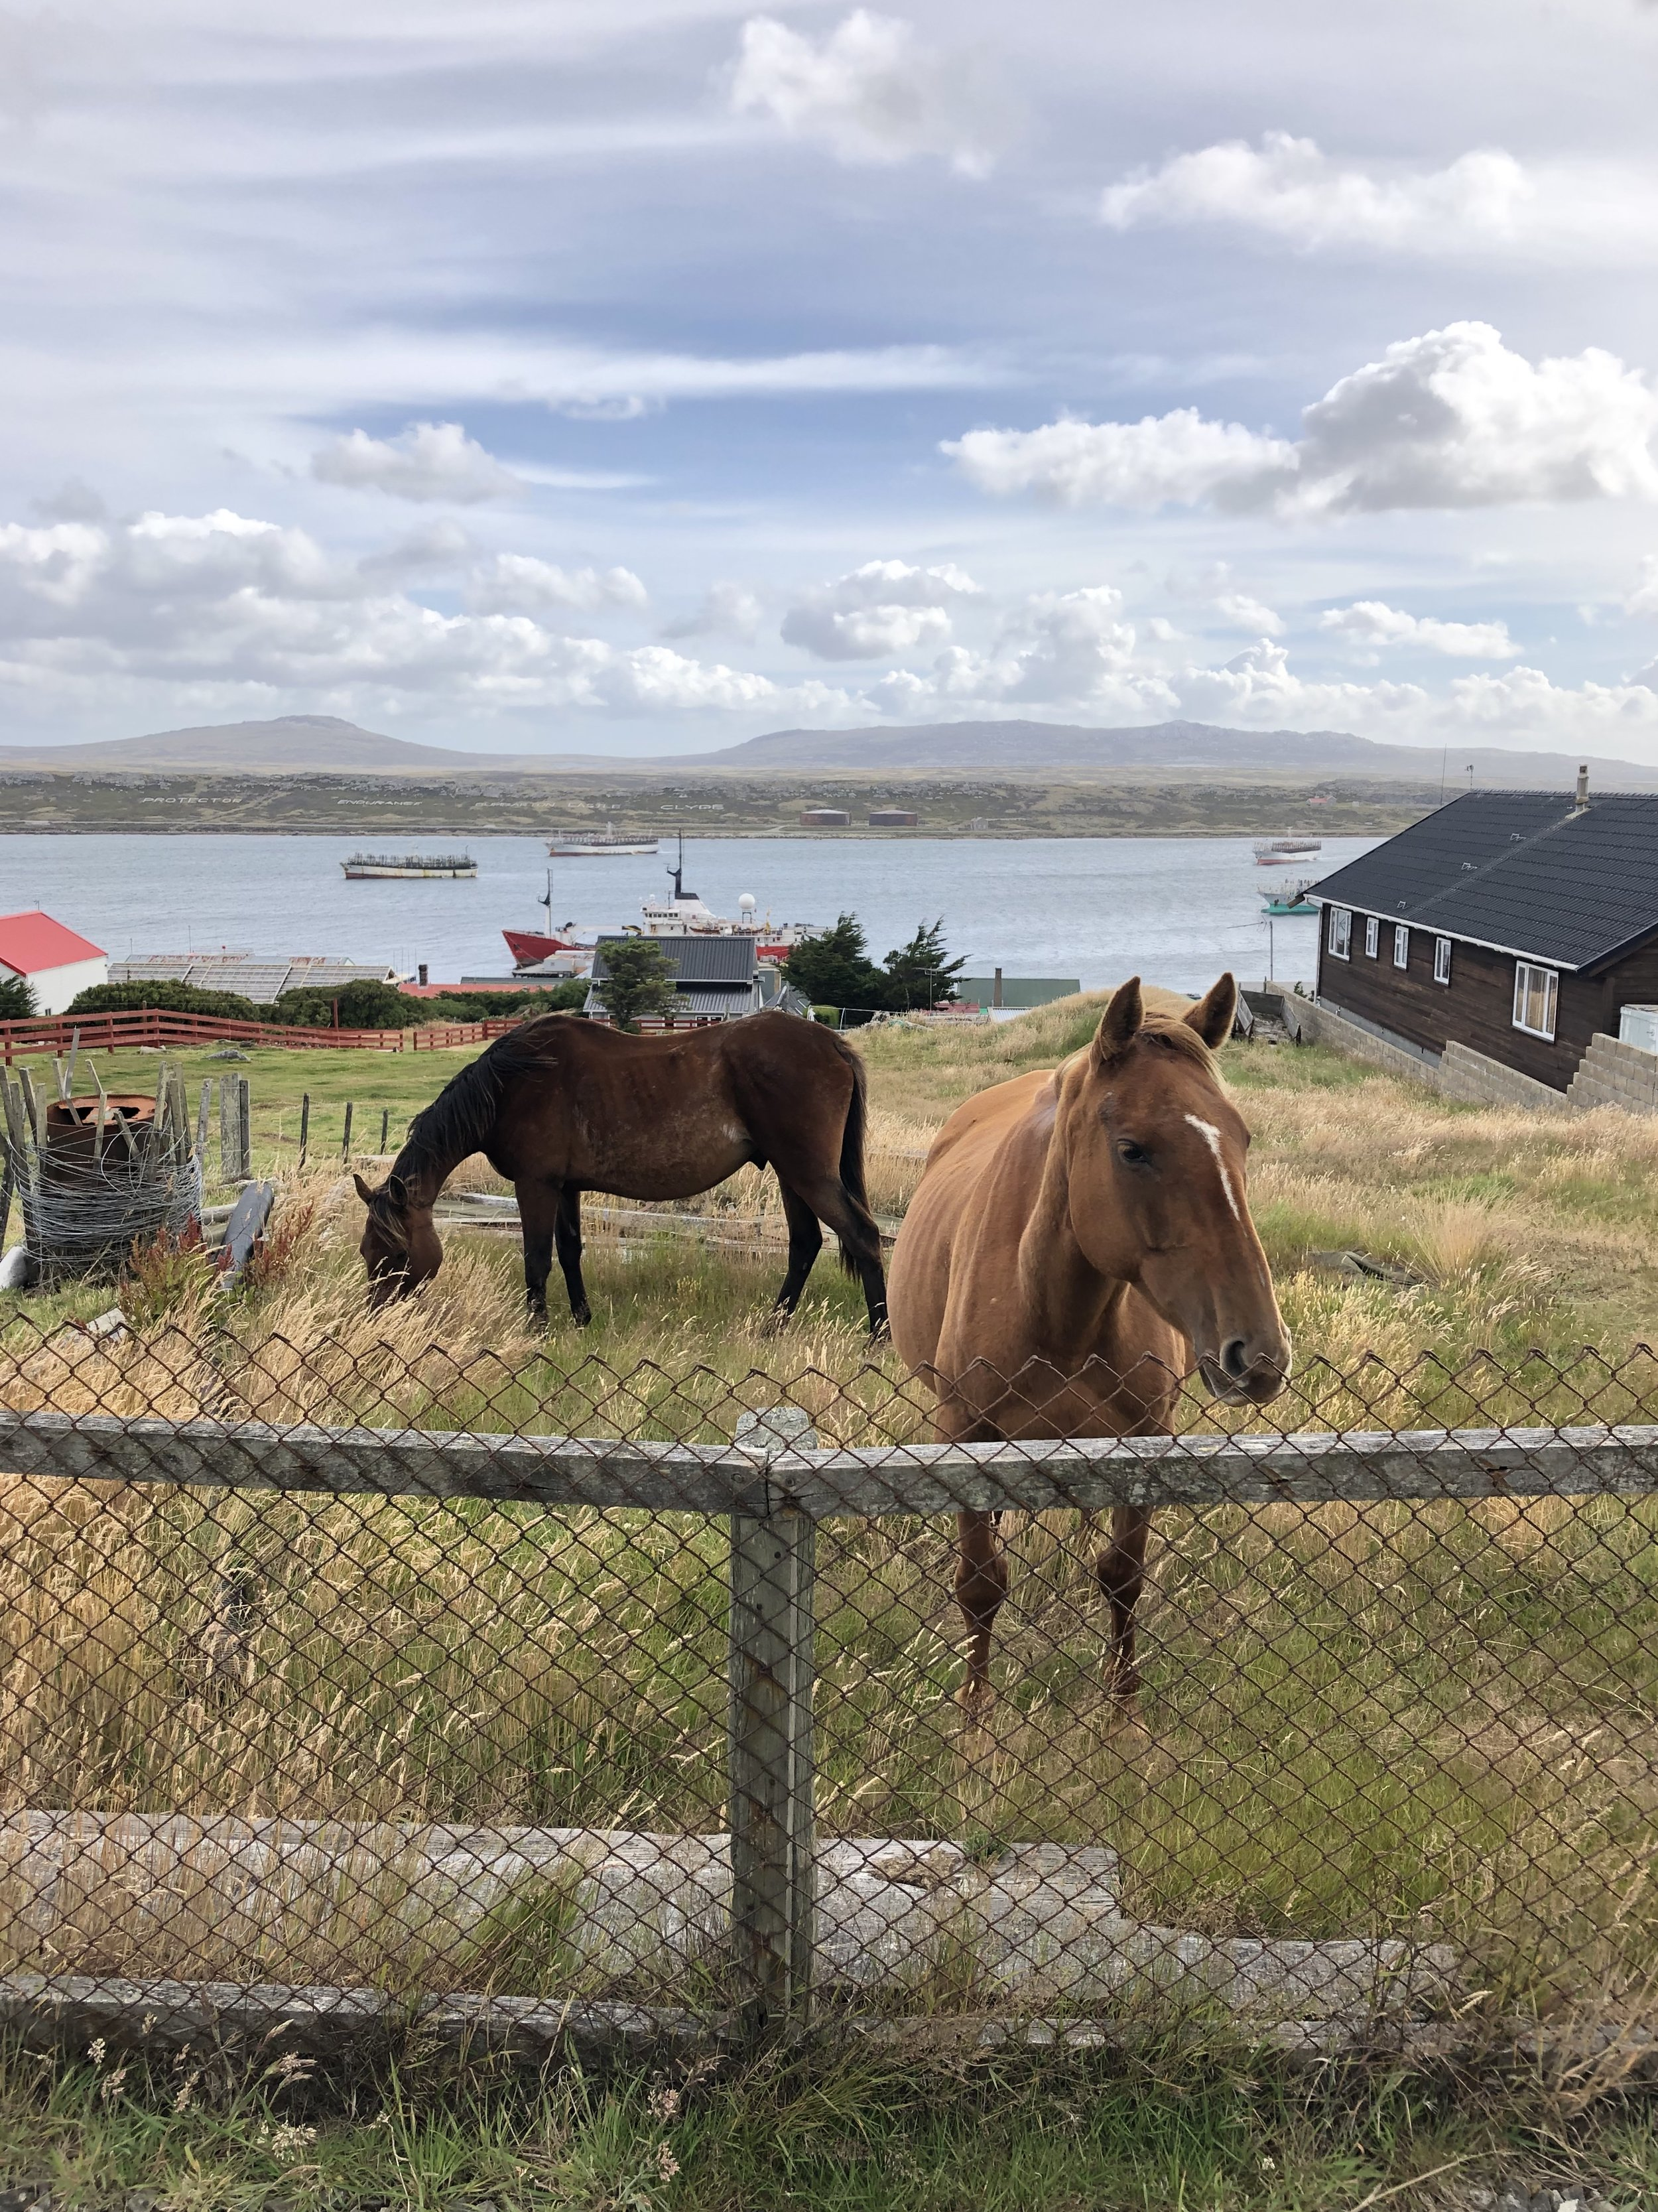 Urban horses and squid jiggers (the boats in the background) will always now remind me of the Falklands